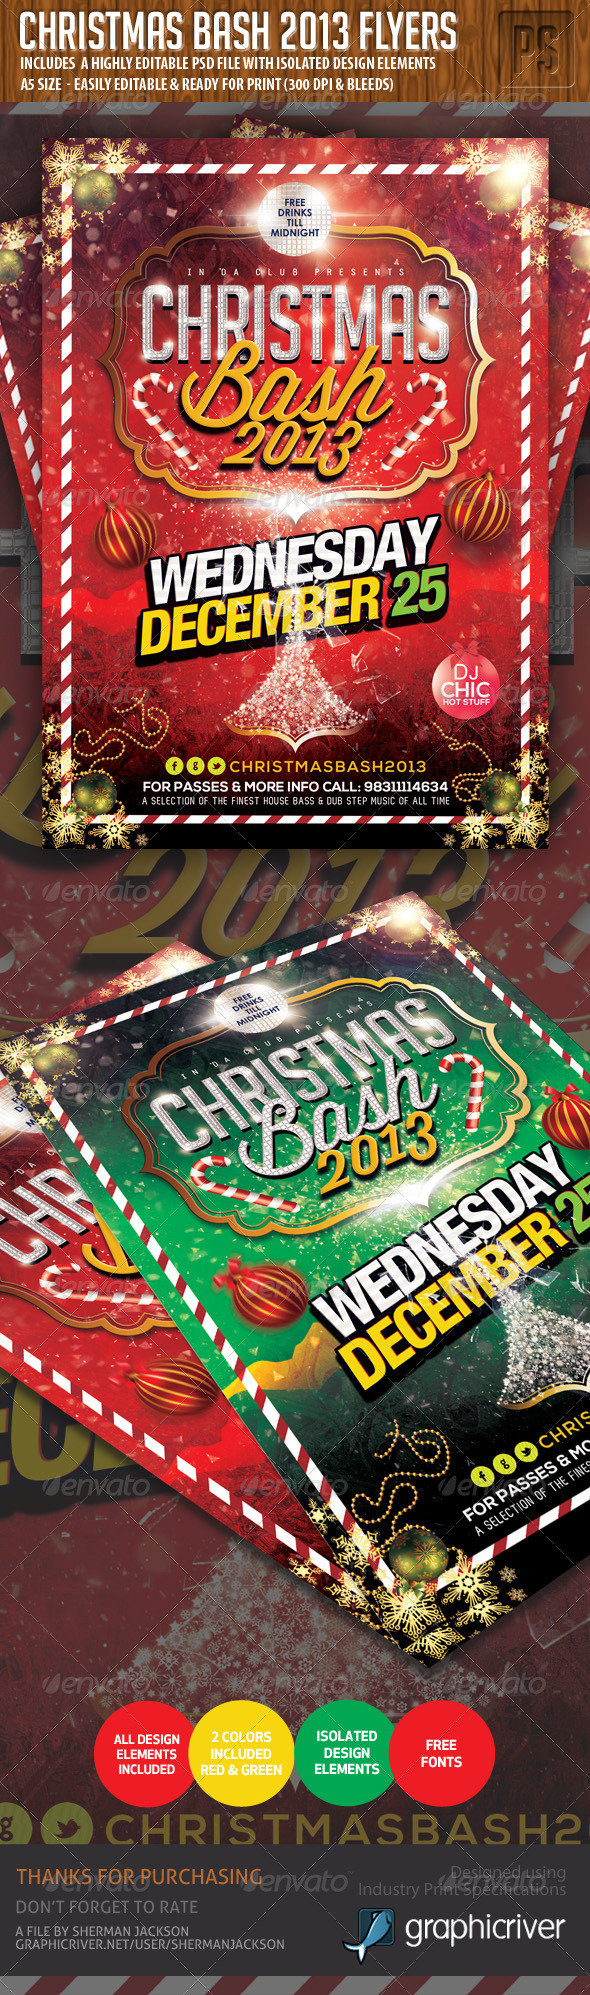 GraphicRiver Christmas Party Bash Flyer 2013 6279474